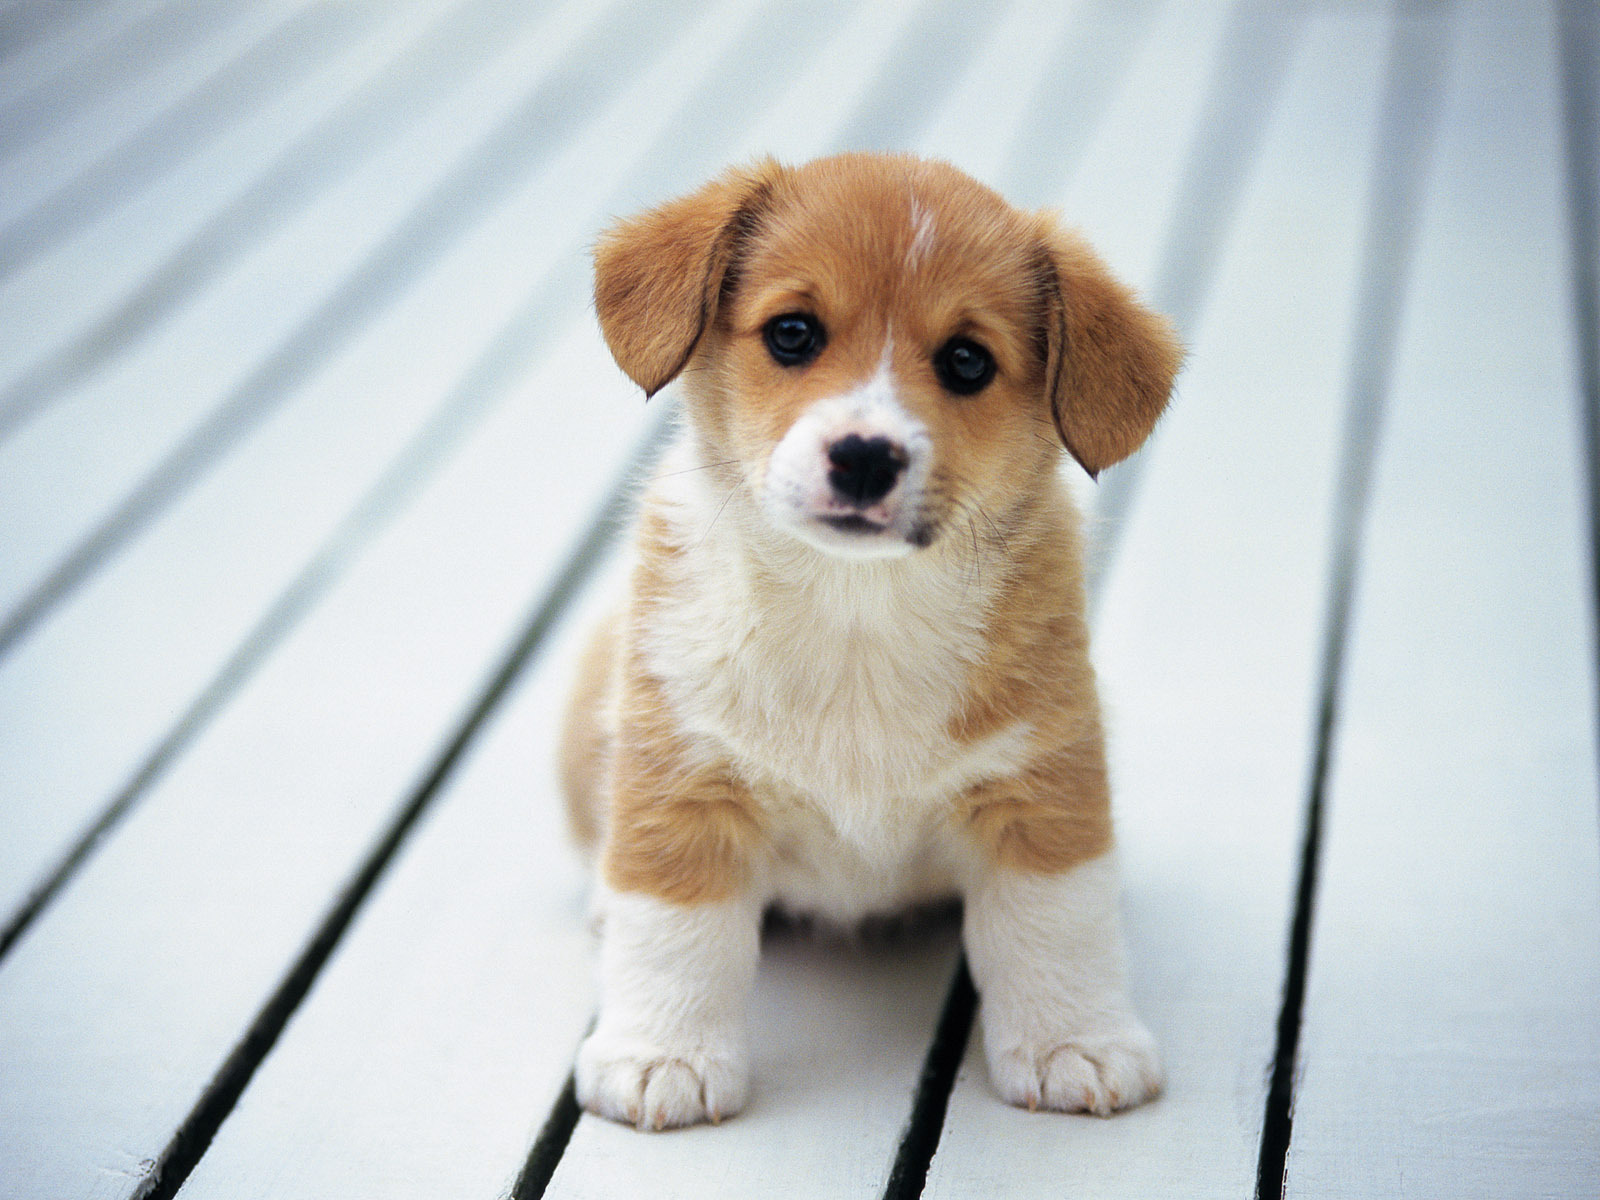 Cute Puppy So Puppies Fanpop Widescreen With Pictures Of Full Hd